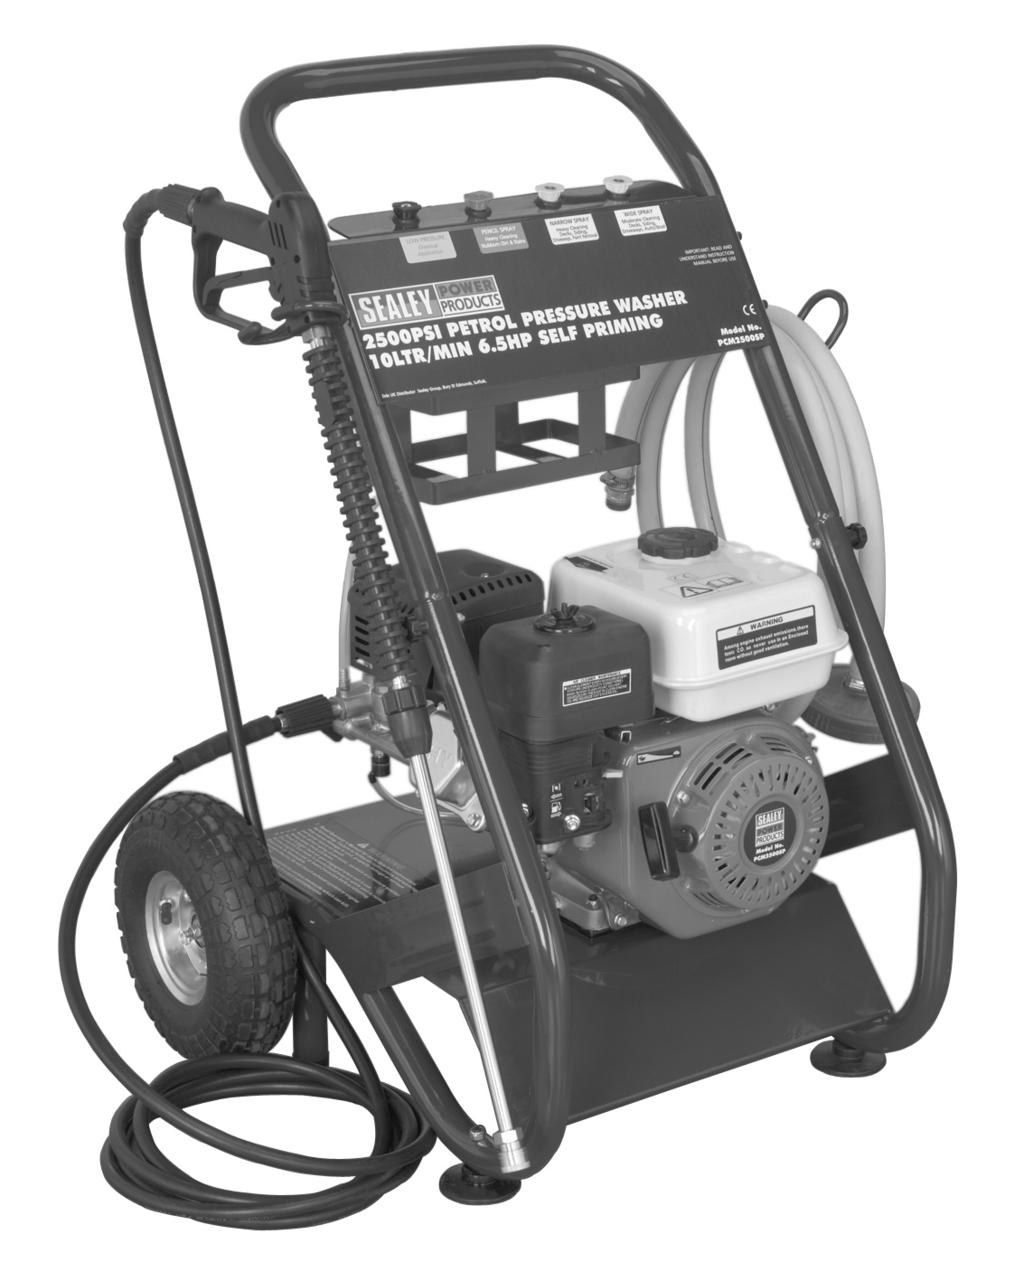 Petrol powered pressure washer with recoil starting. Ideal for commercial applications: with 5mtr pressure hose, 1mtr gun and lance and adjustable nozzle.